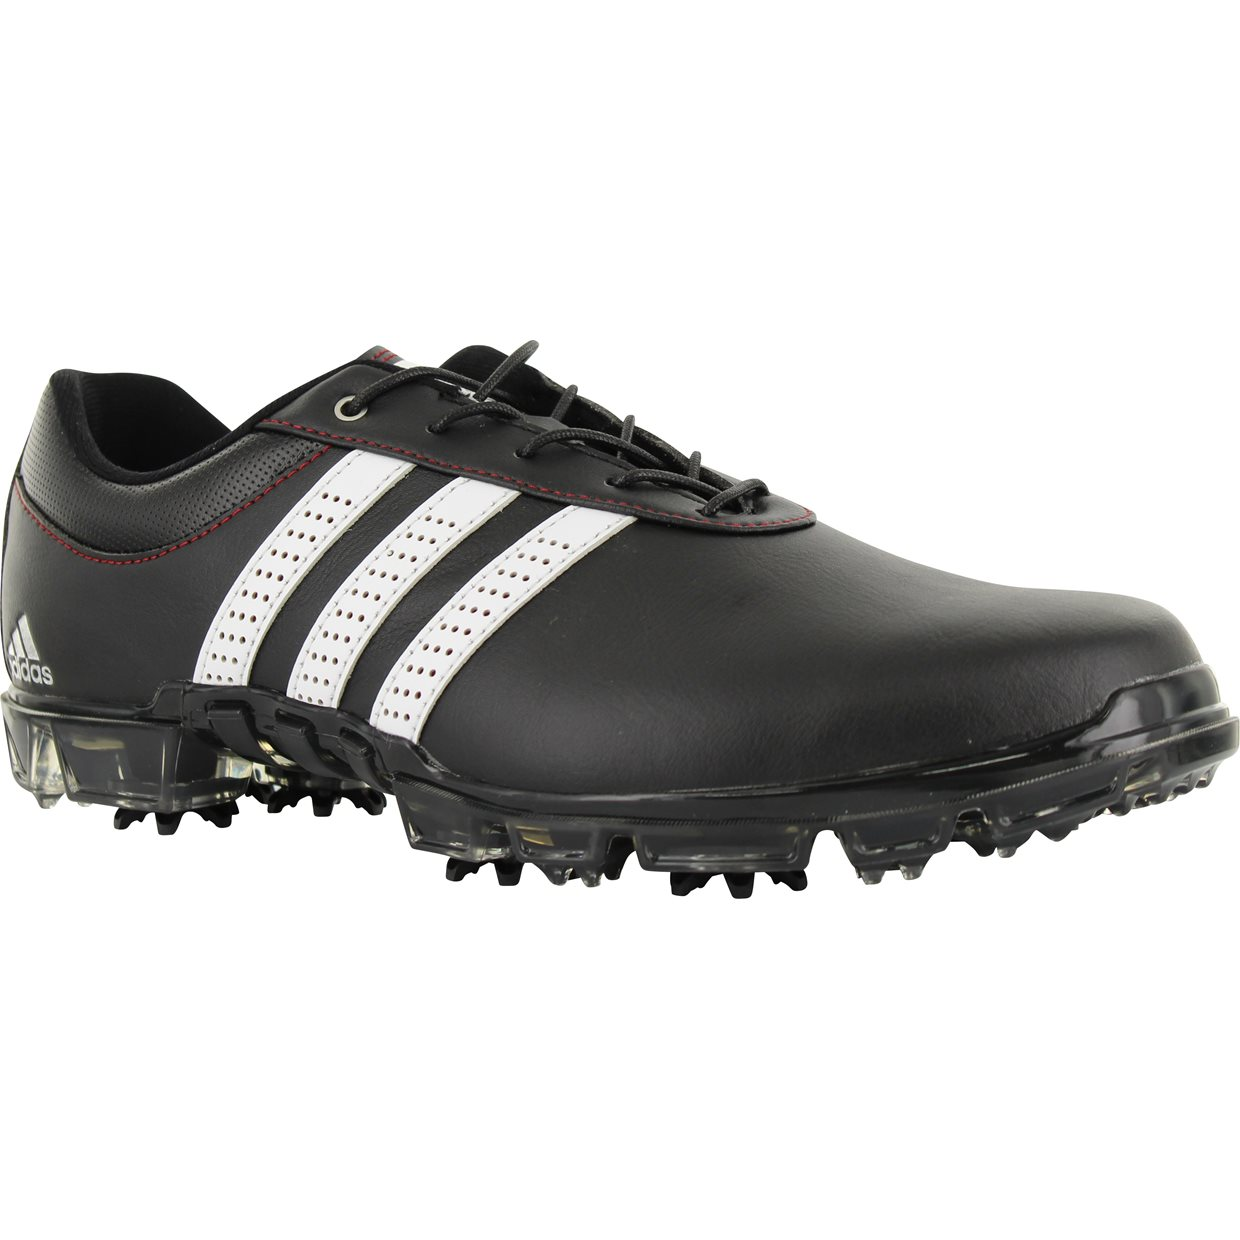 adidas adipure flex golf shoes